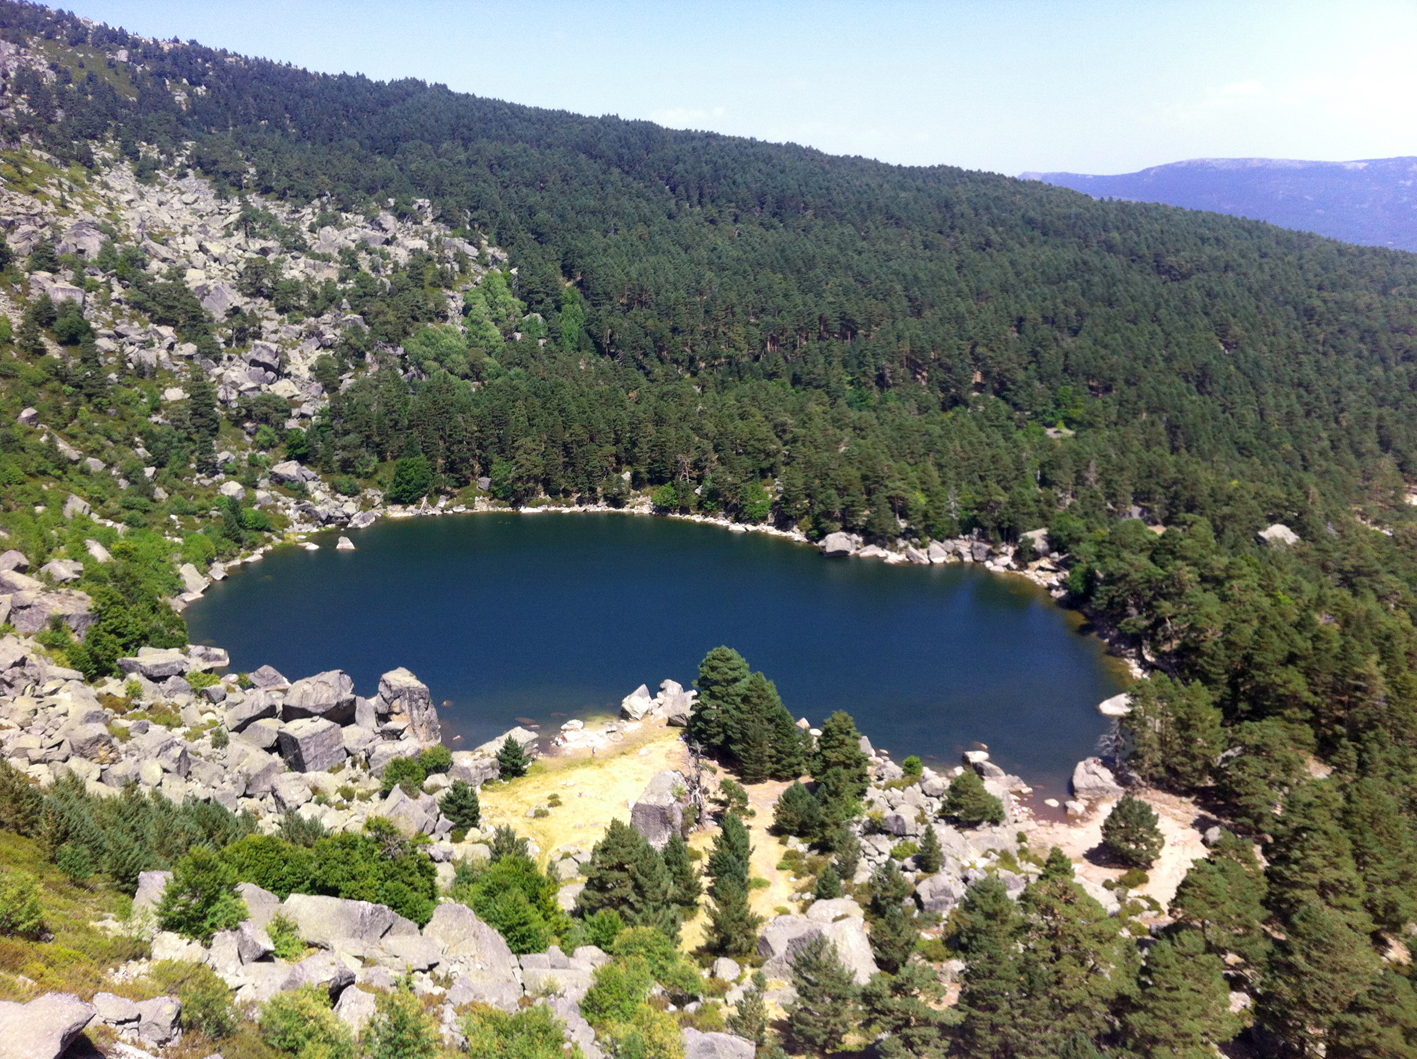 Kike_on_tour_laguna_negra